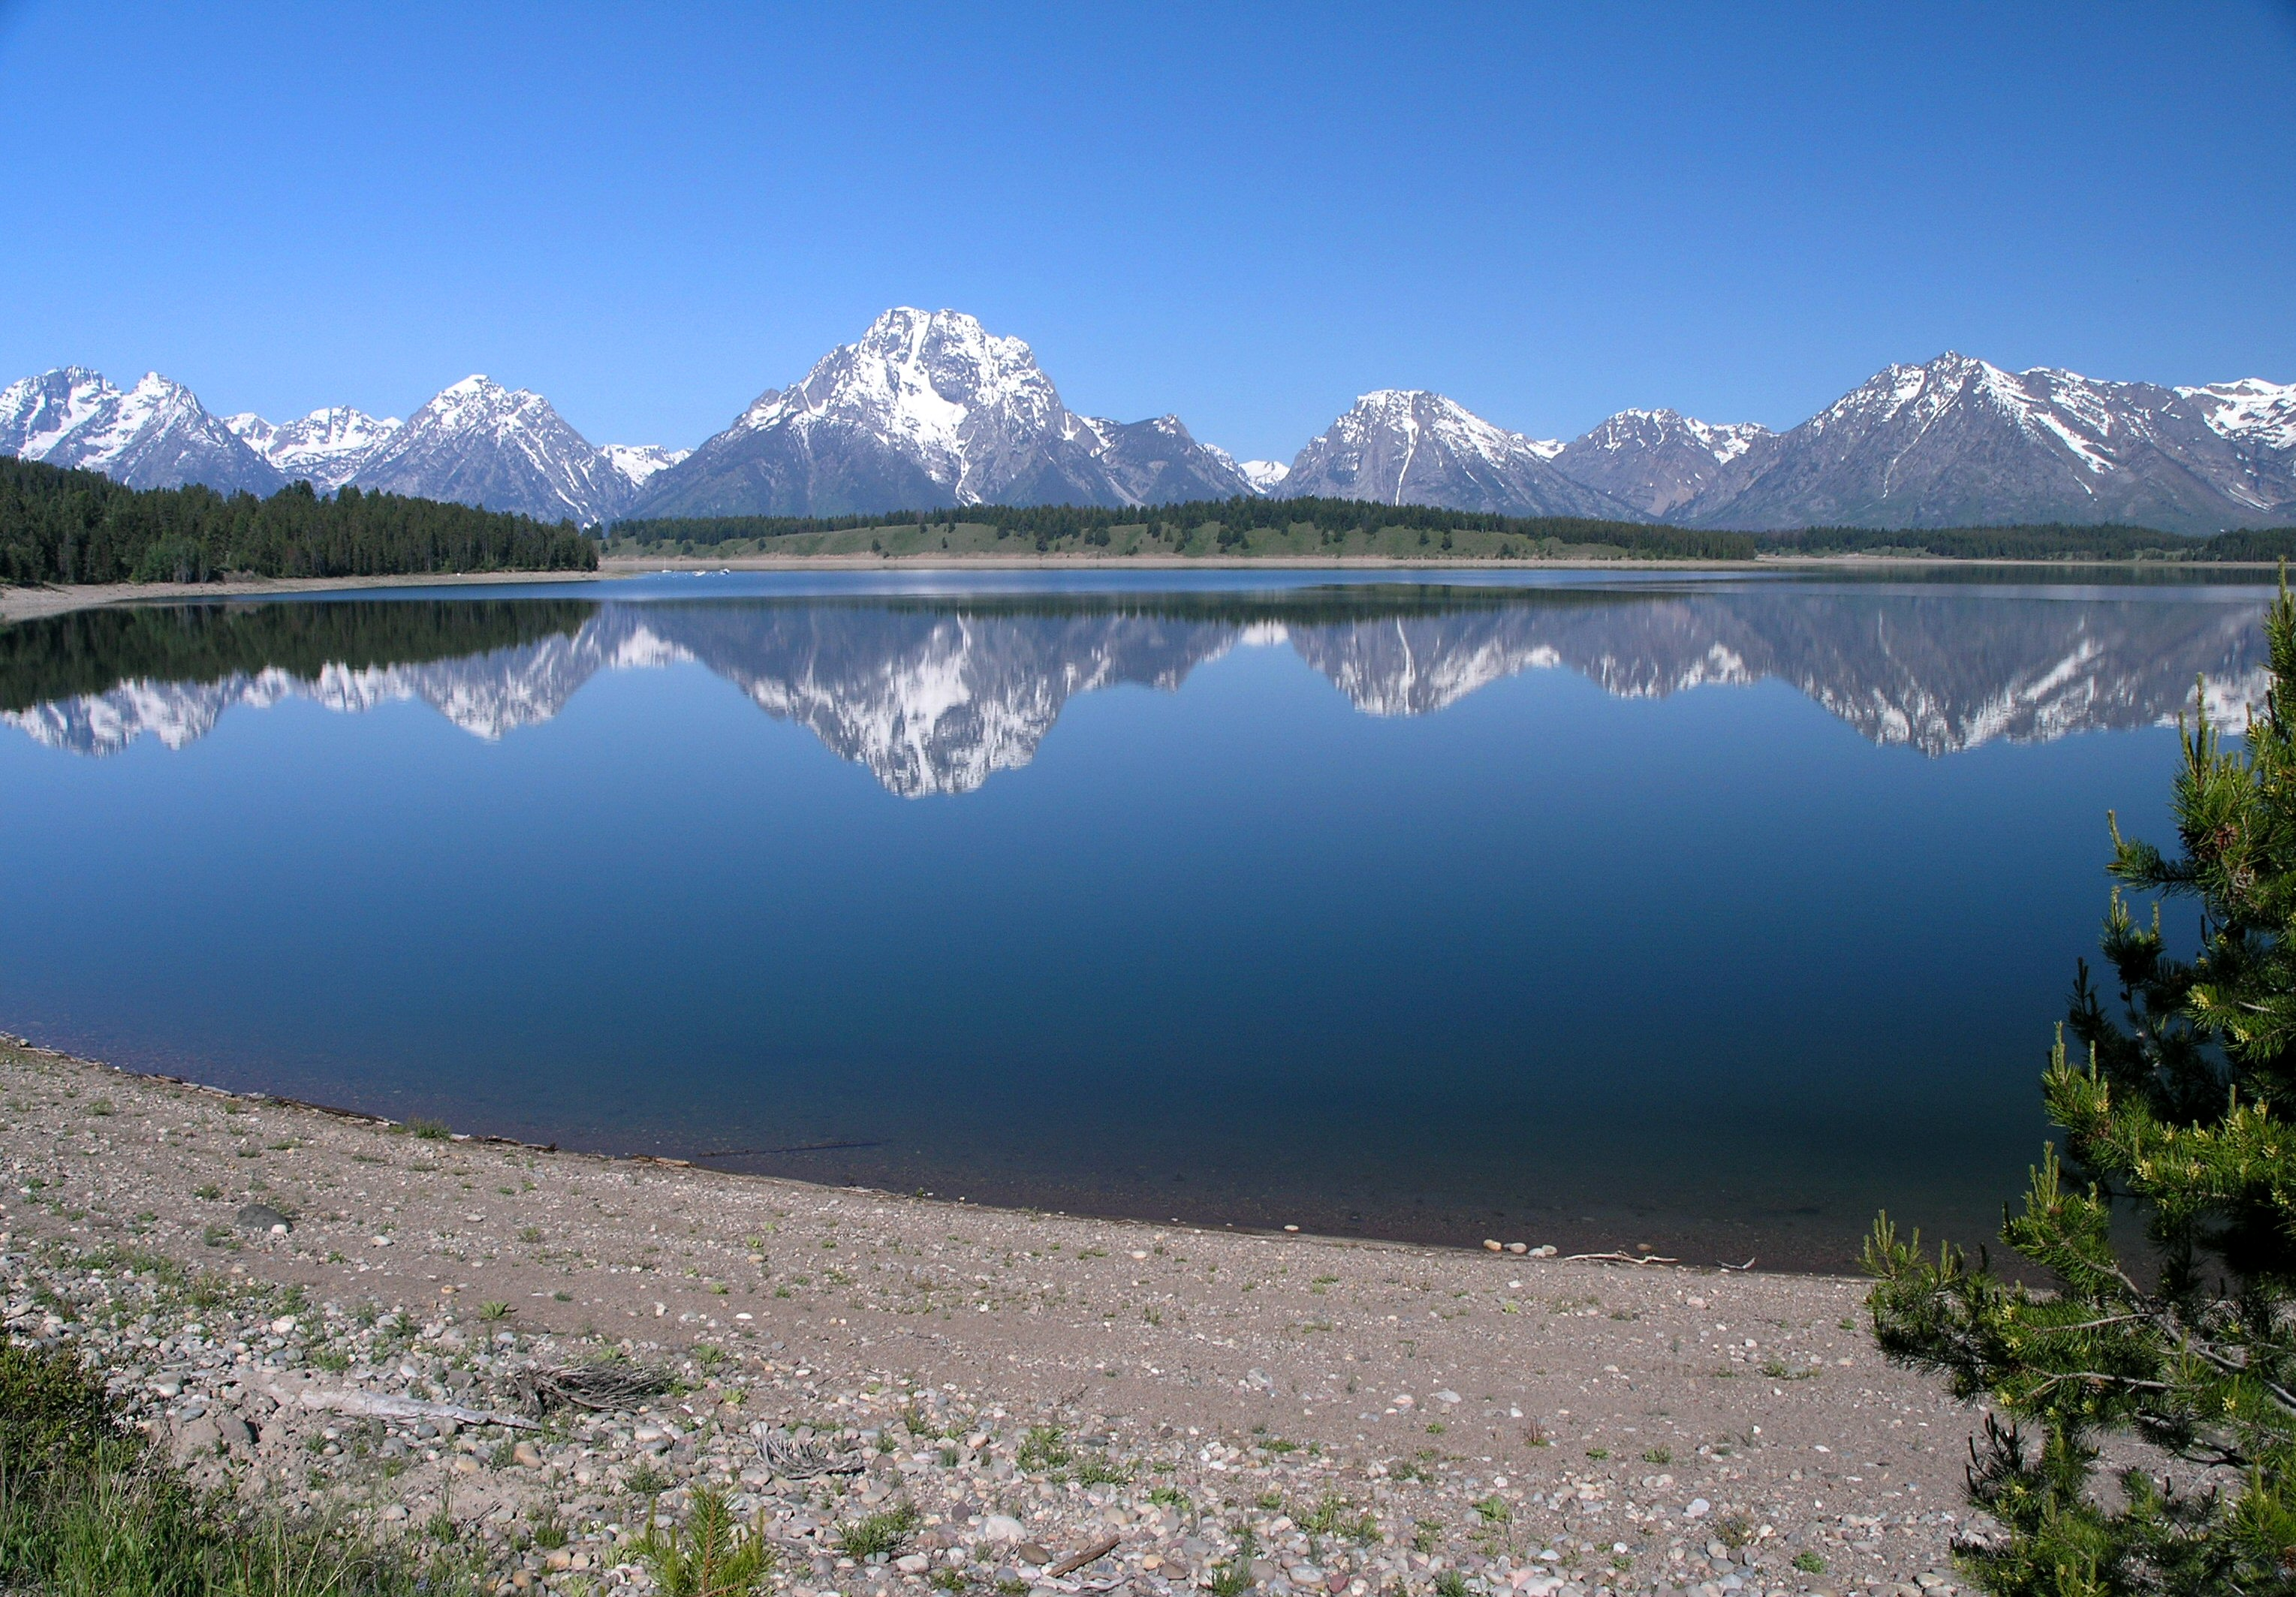 Unsurpassed & Sublime Beauty of Grand Teton National Park [60 PICS]